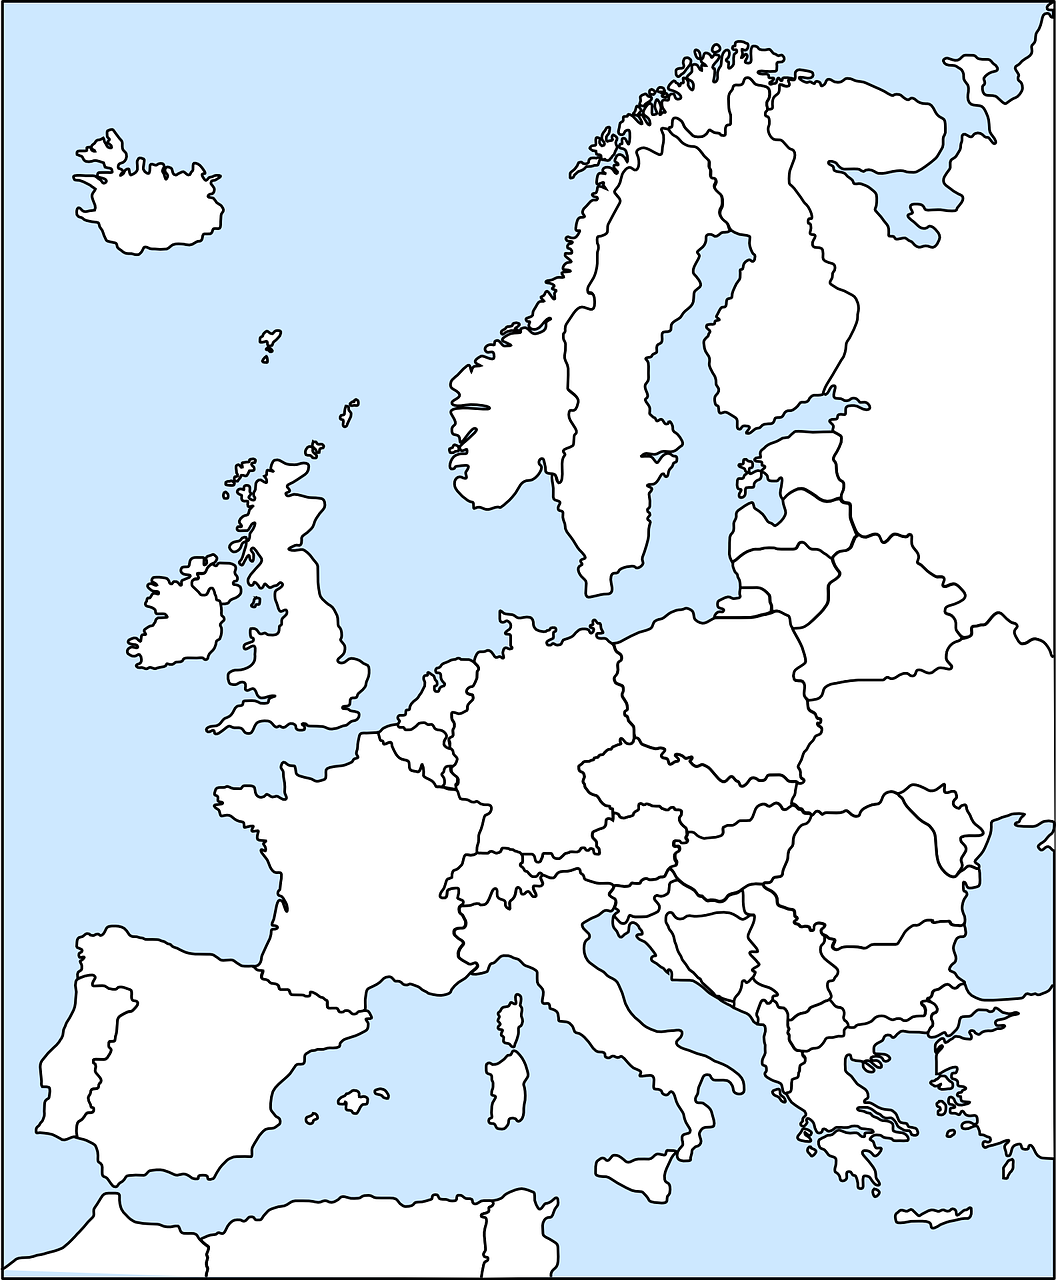 White on blue map of Europe